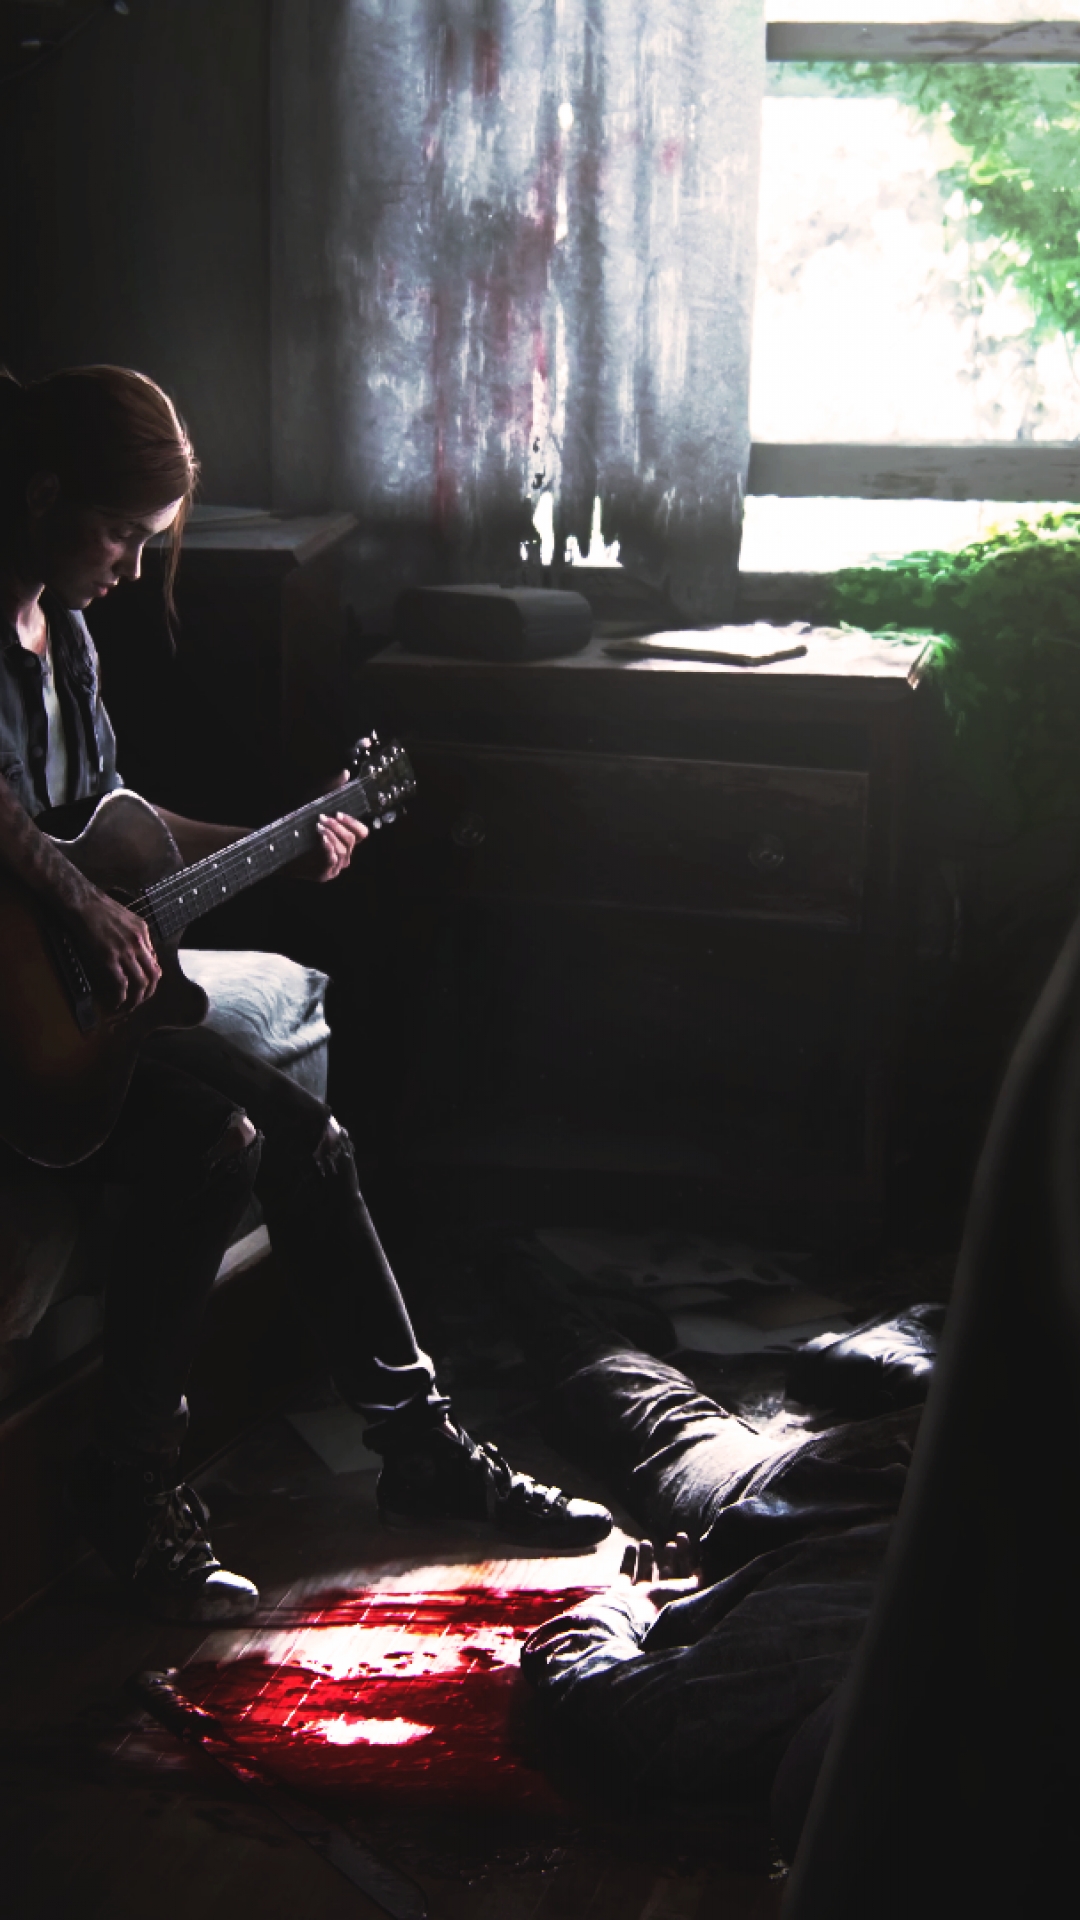 Download 1080x1920 The Last Of Us 2 Ellie Playing Guitar 1080x1920